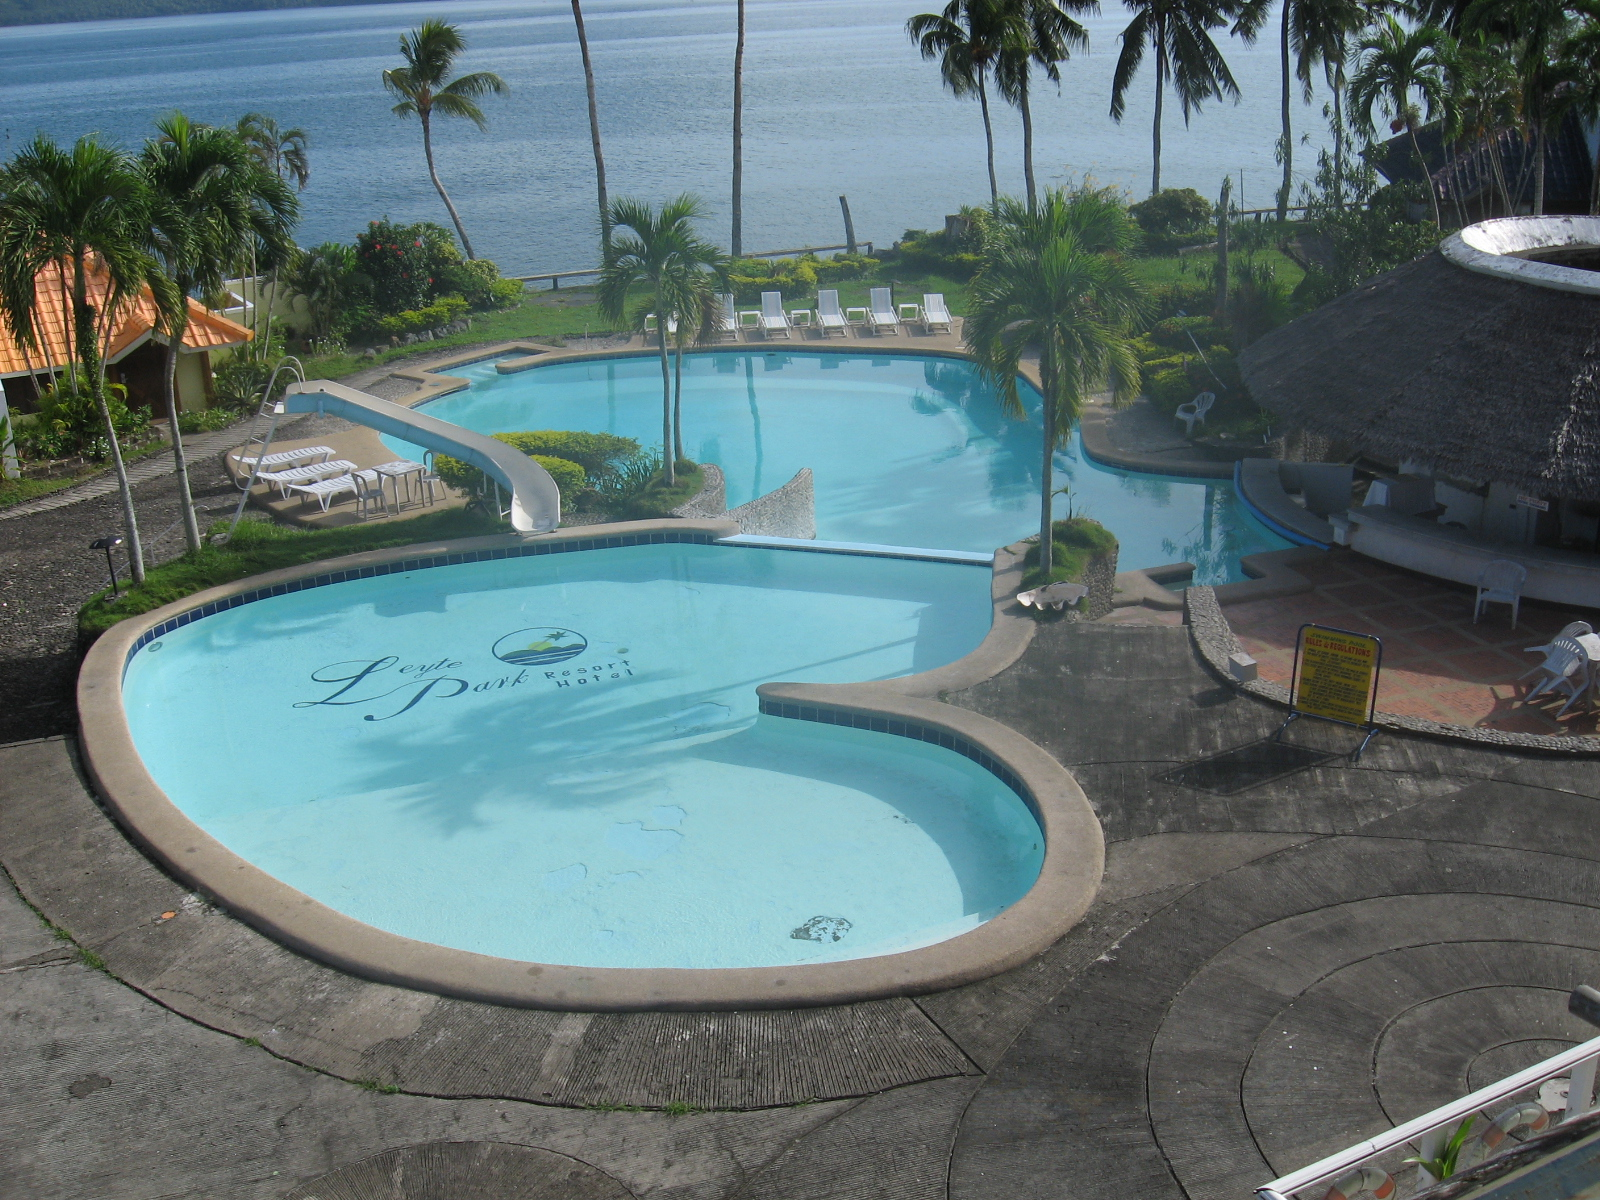 F y i fire your imagination hotel and inn review leyte park resort hotel tacloban city leyte for Swimming pool in tacloban city